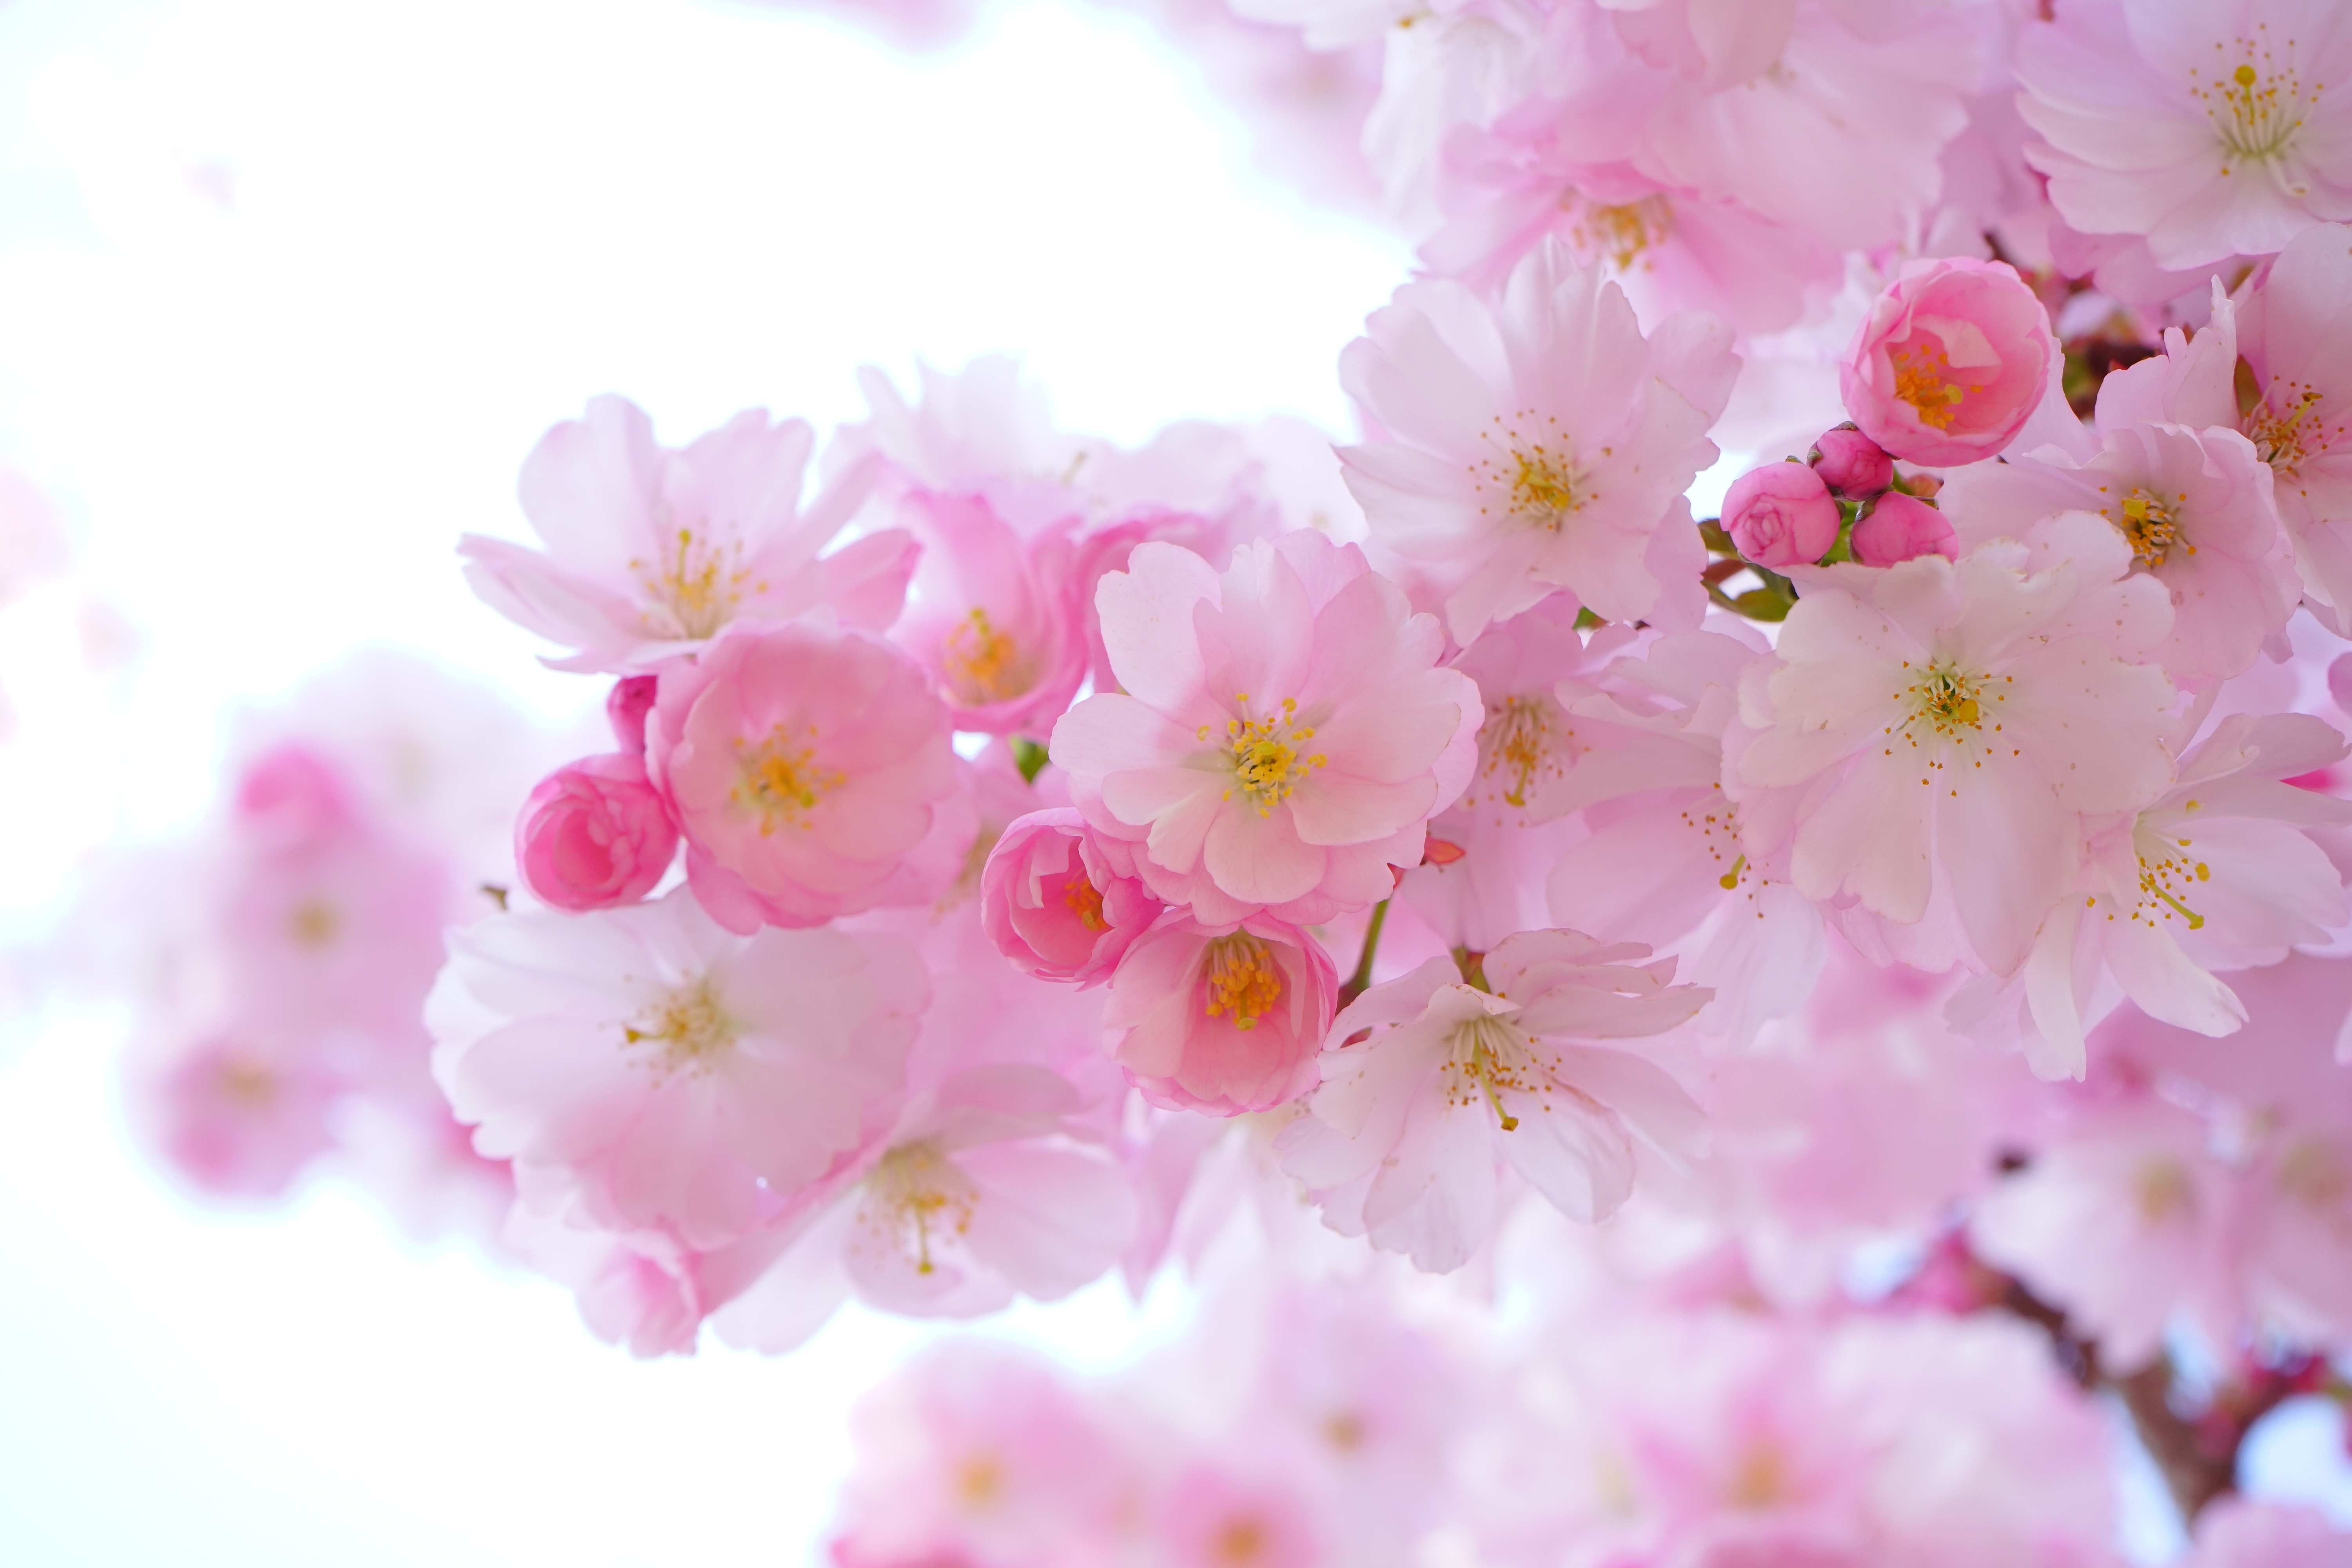 Pink, Flowers - Free images on Pixabay